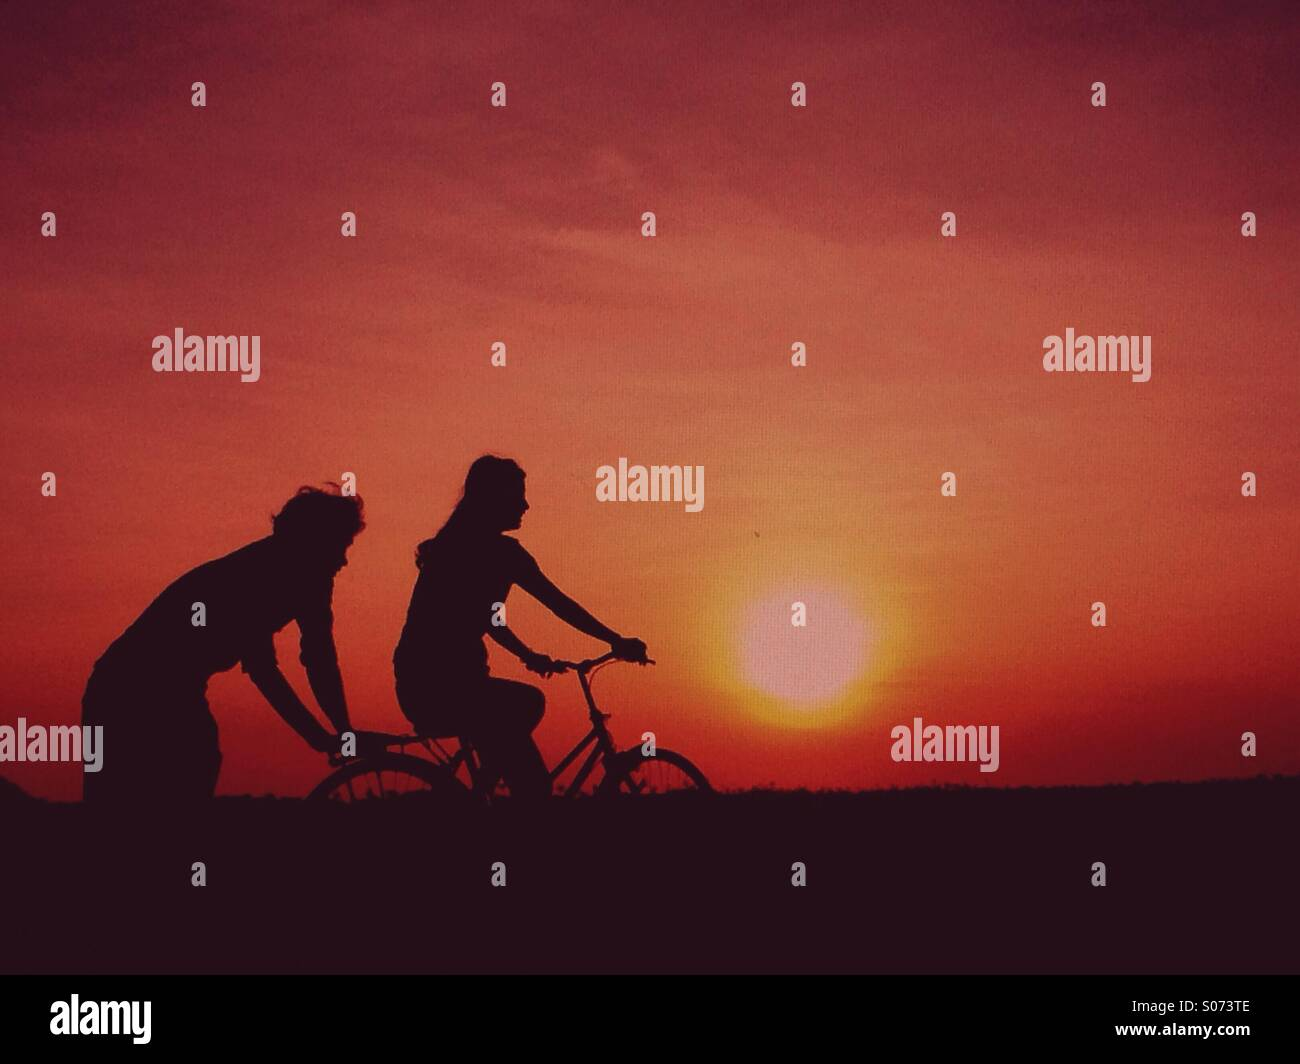 Loving couple on cycling during sunset - Stock Image